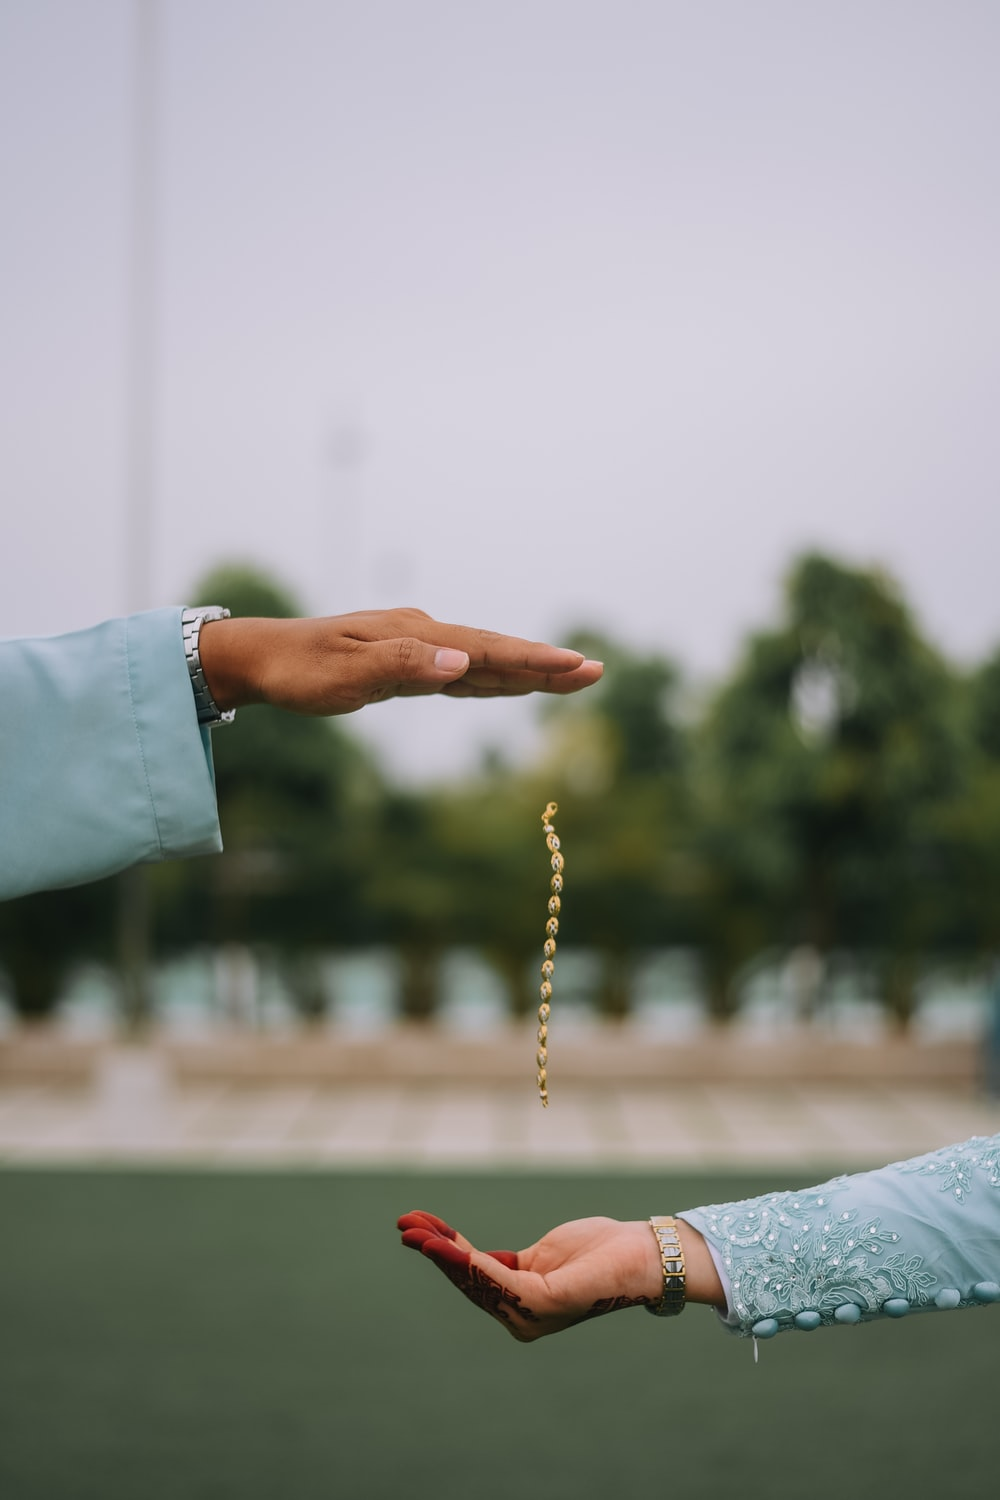 person holding brown and white beaded necklace